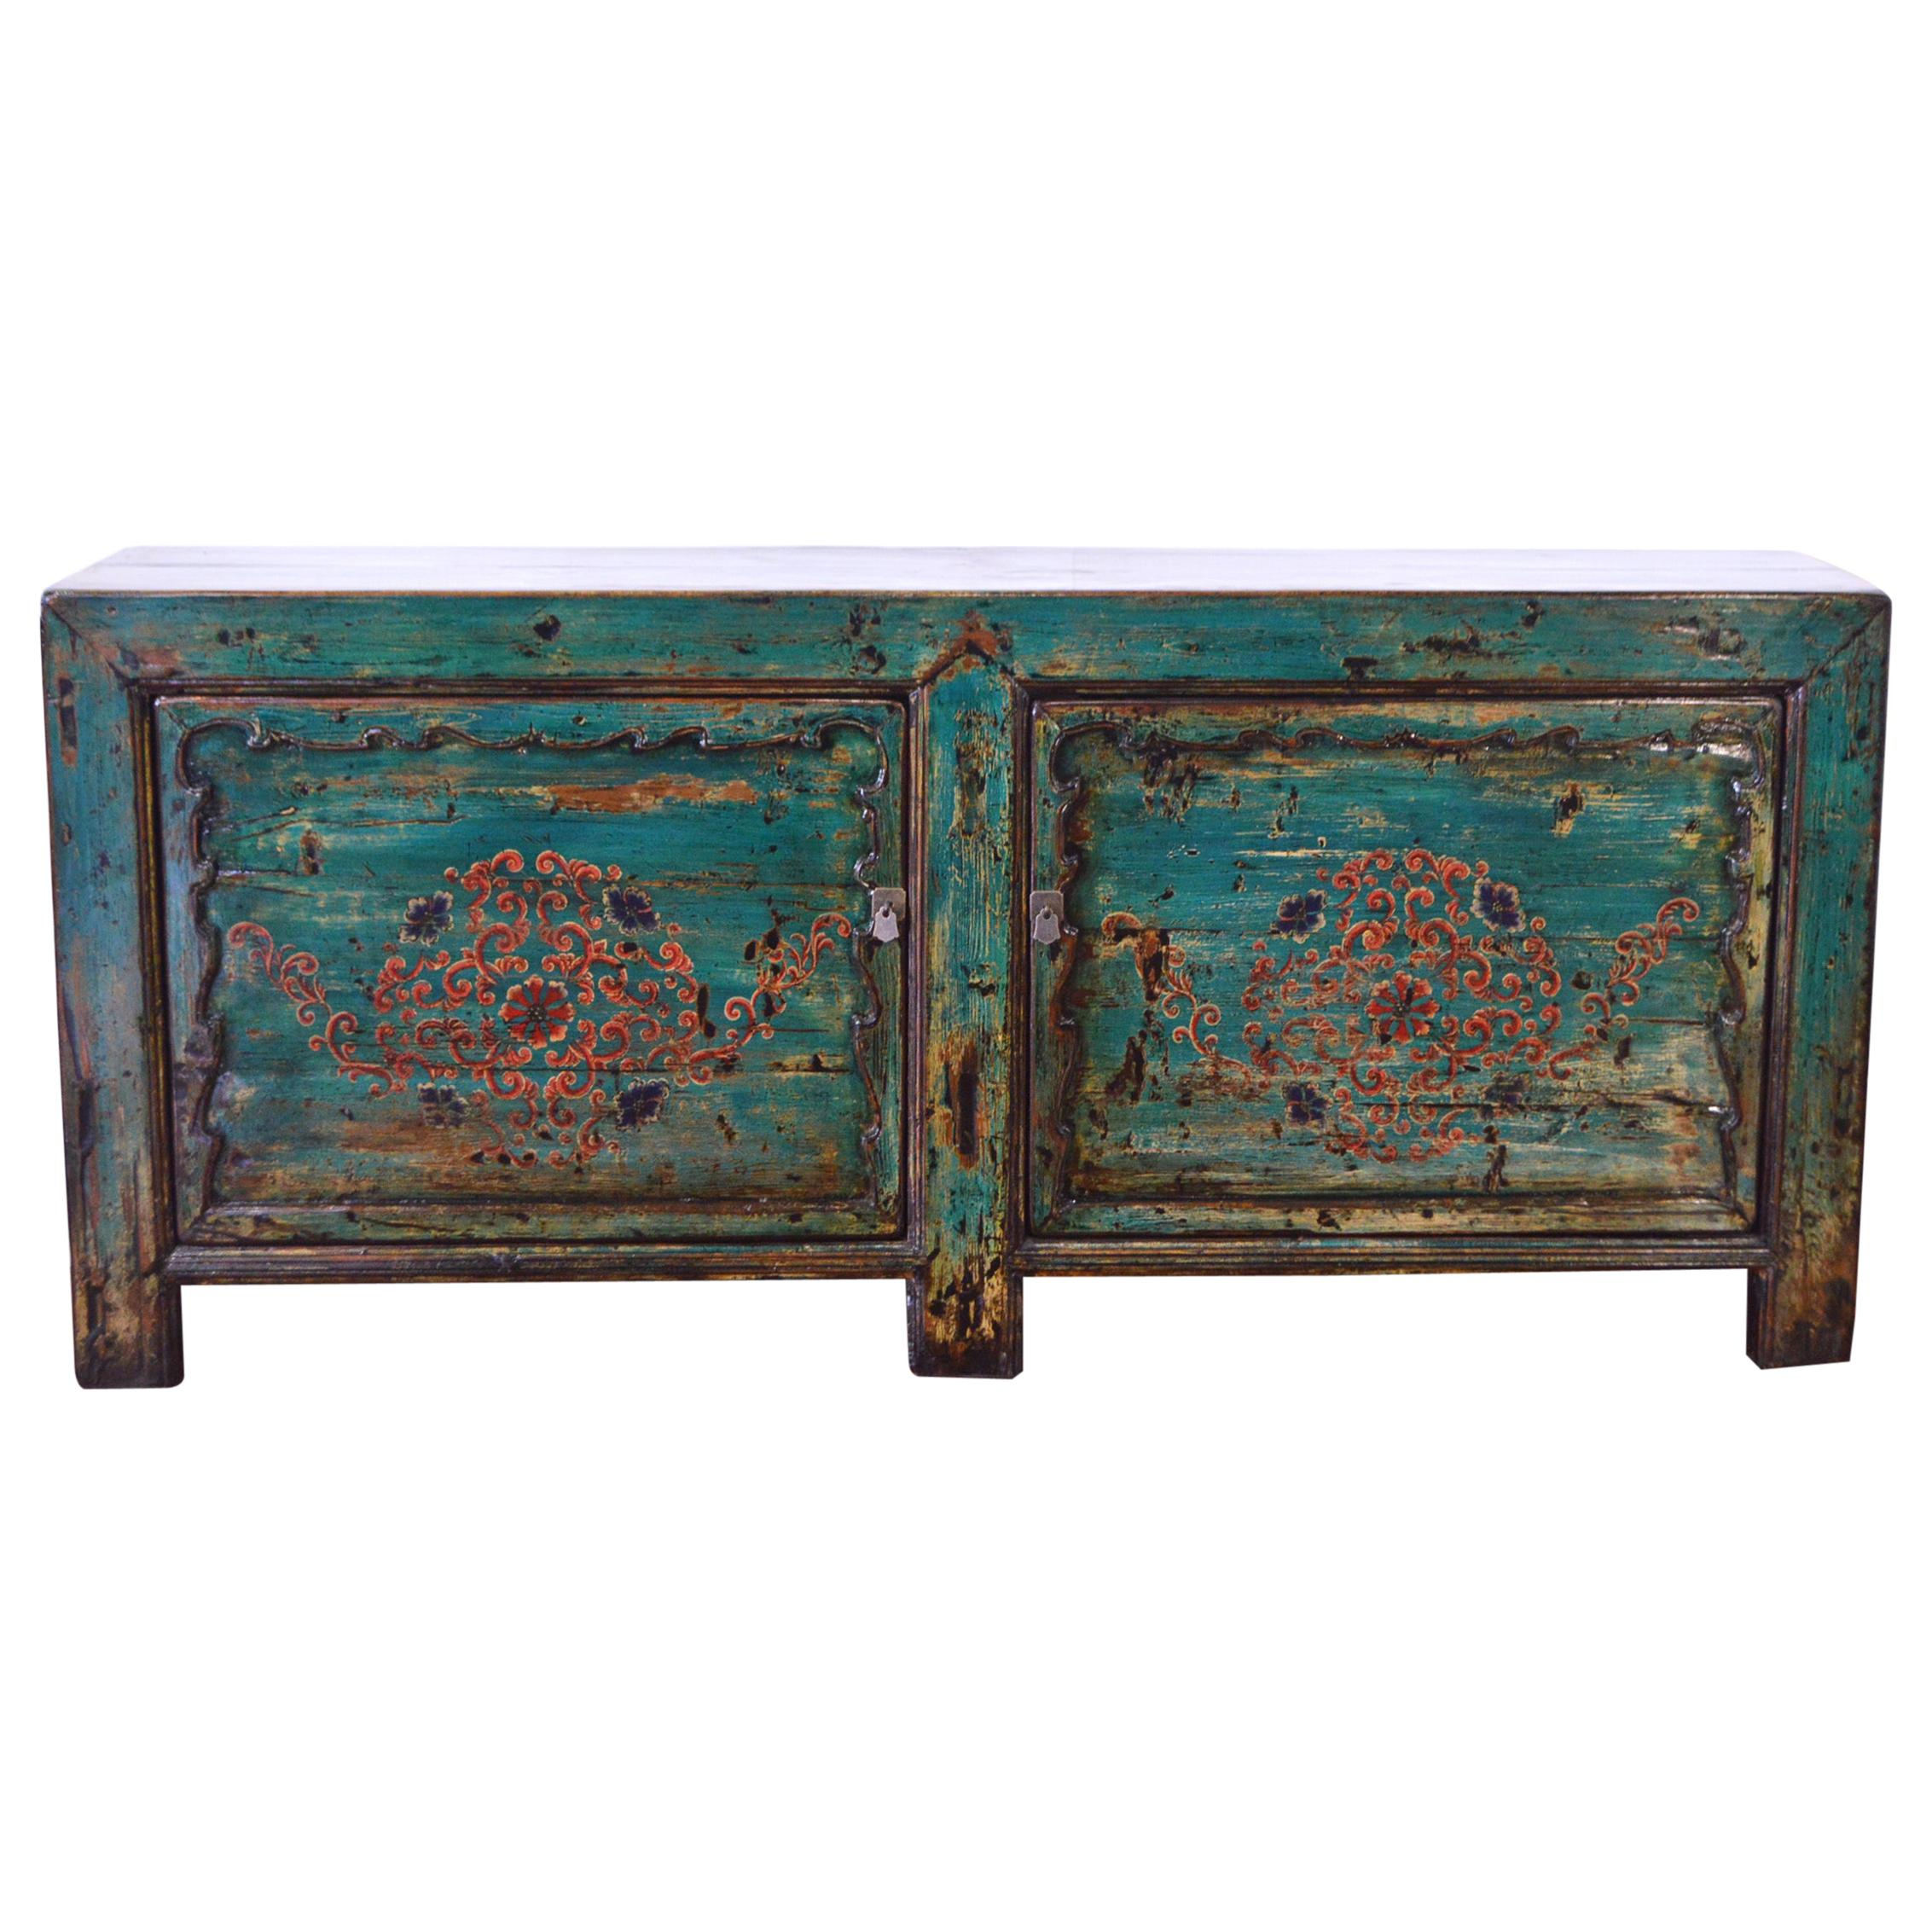 Early-20th Century Chinese Lacquered Elm Buffet Hand Painted